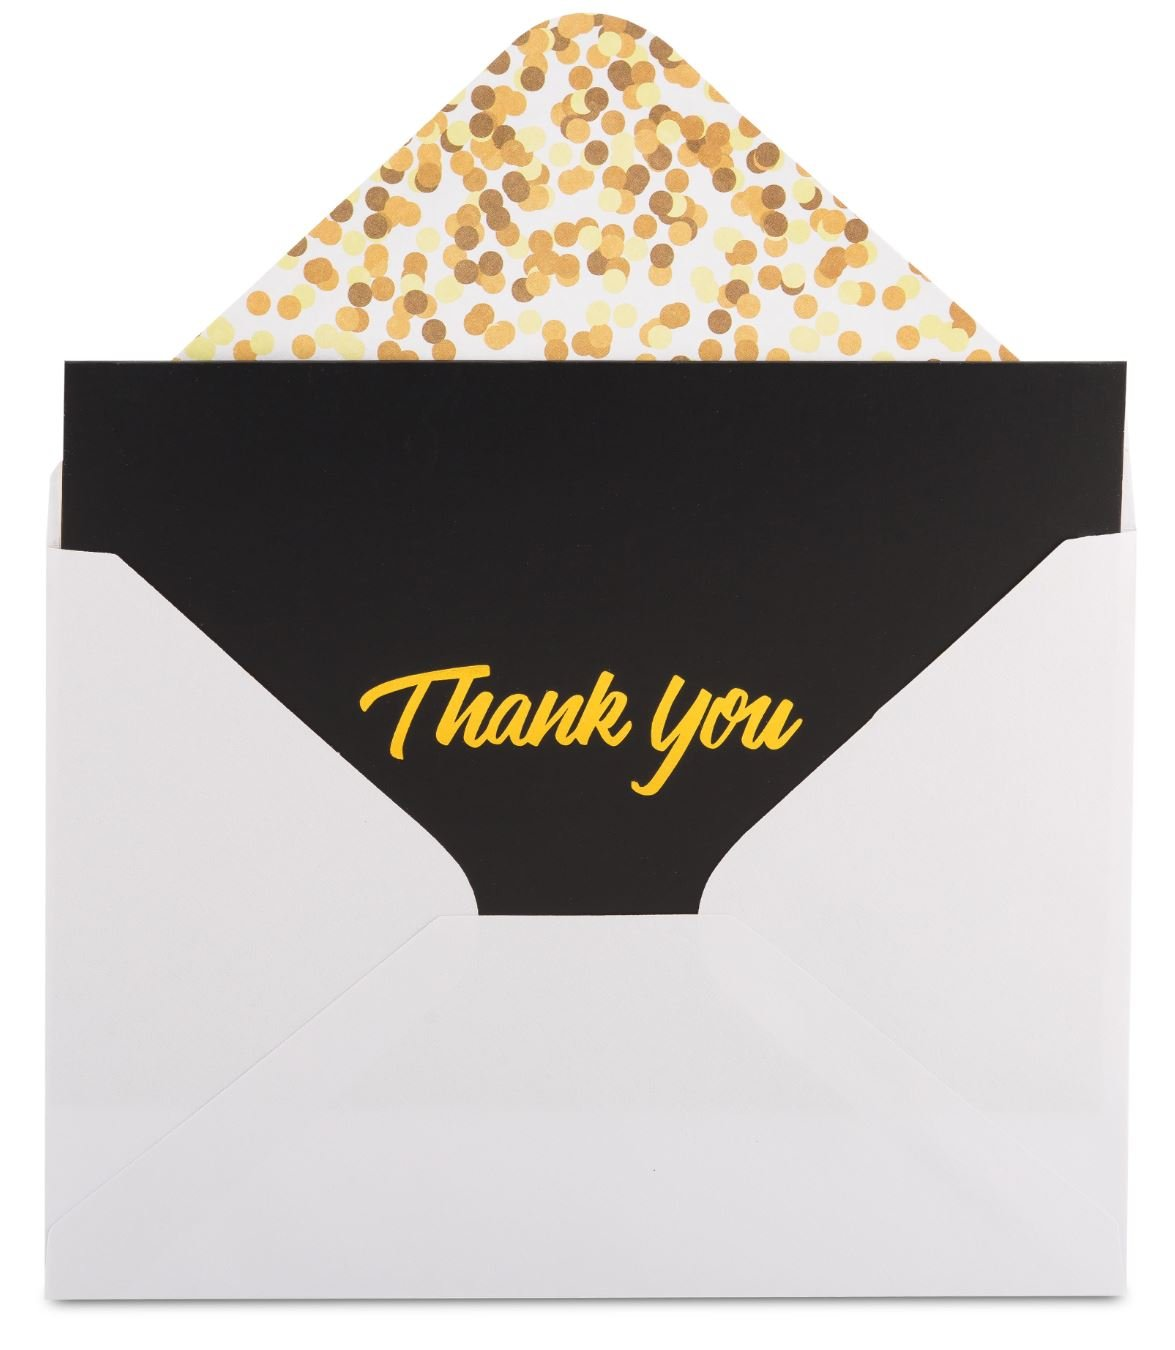 100 Thank You Cards with Envelopes - Thank You Notes, Black & Gold Foil - Blank Cards with Envelopes - For Business, Wedding, Graduation, Baby/Bridal Shower, Funeral, Professional Thank You Cards Bulk by FORTIVO (Image #4)